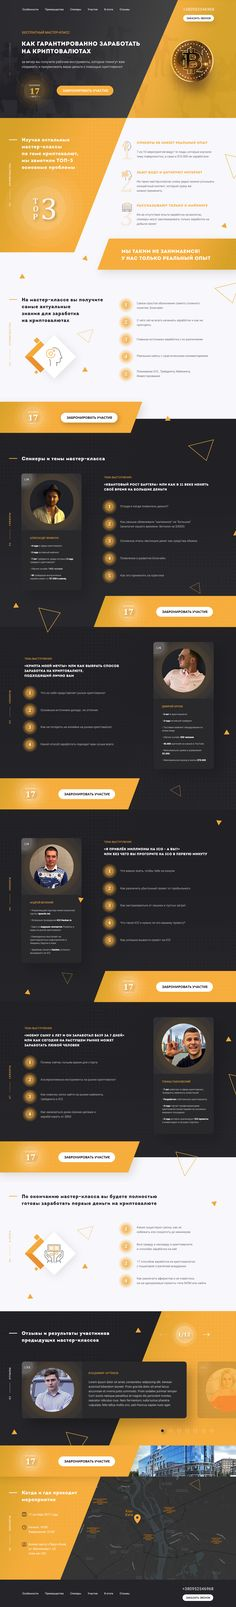 Master Class on the topic of crypto currency on Behance